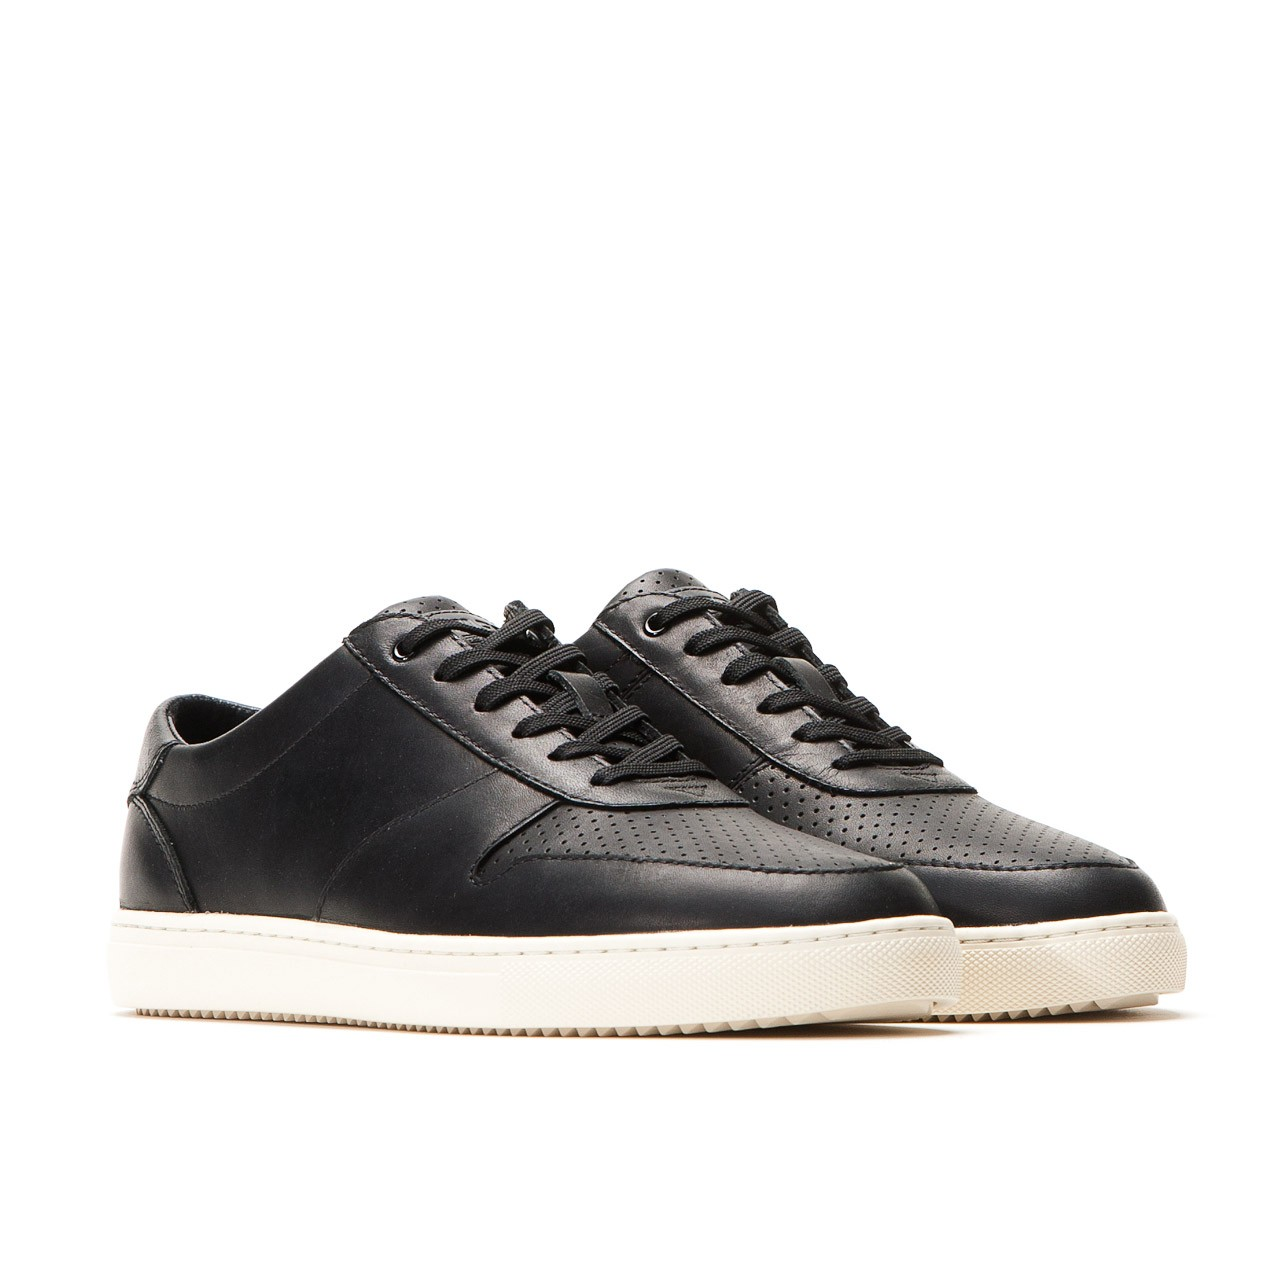 clae-gregory-sp-black-leather-2